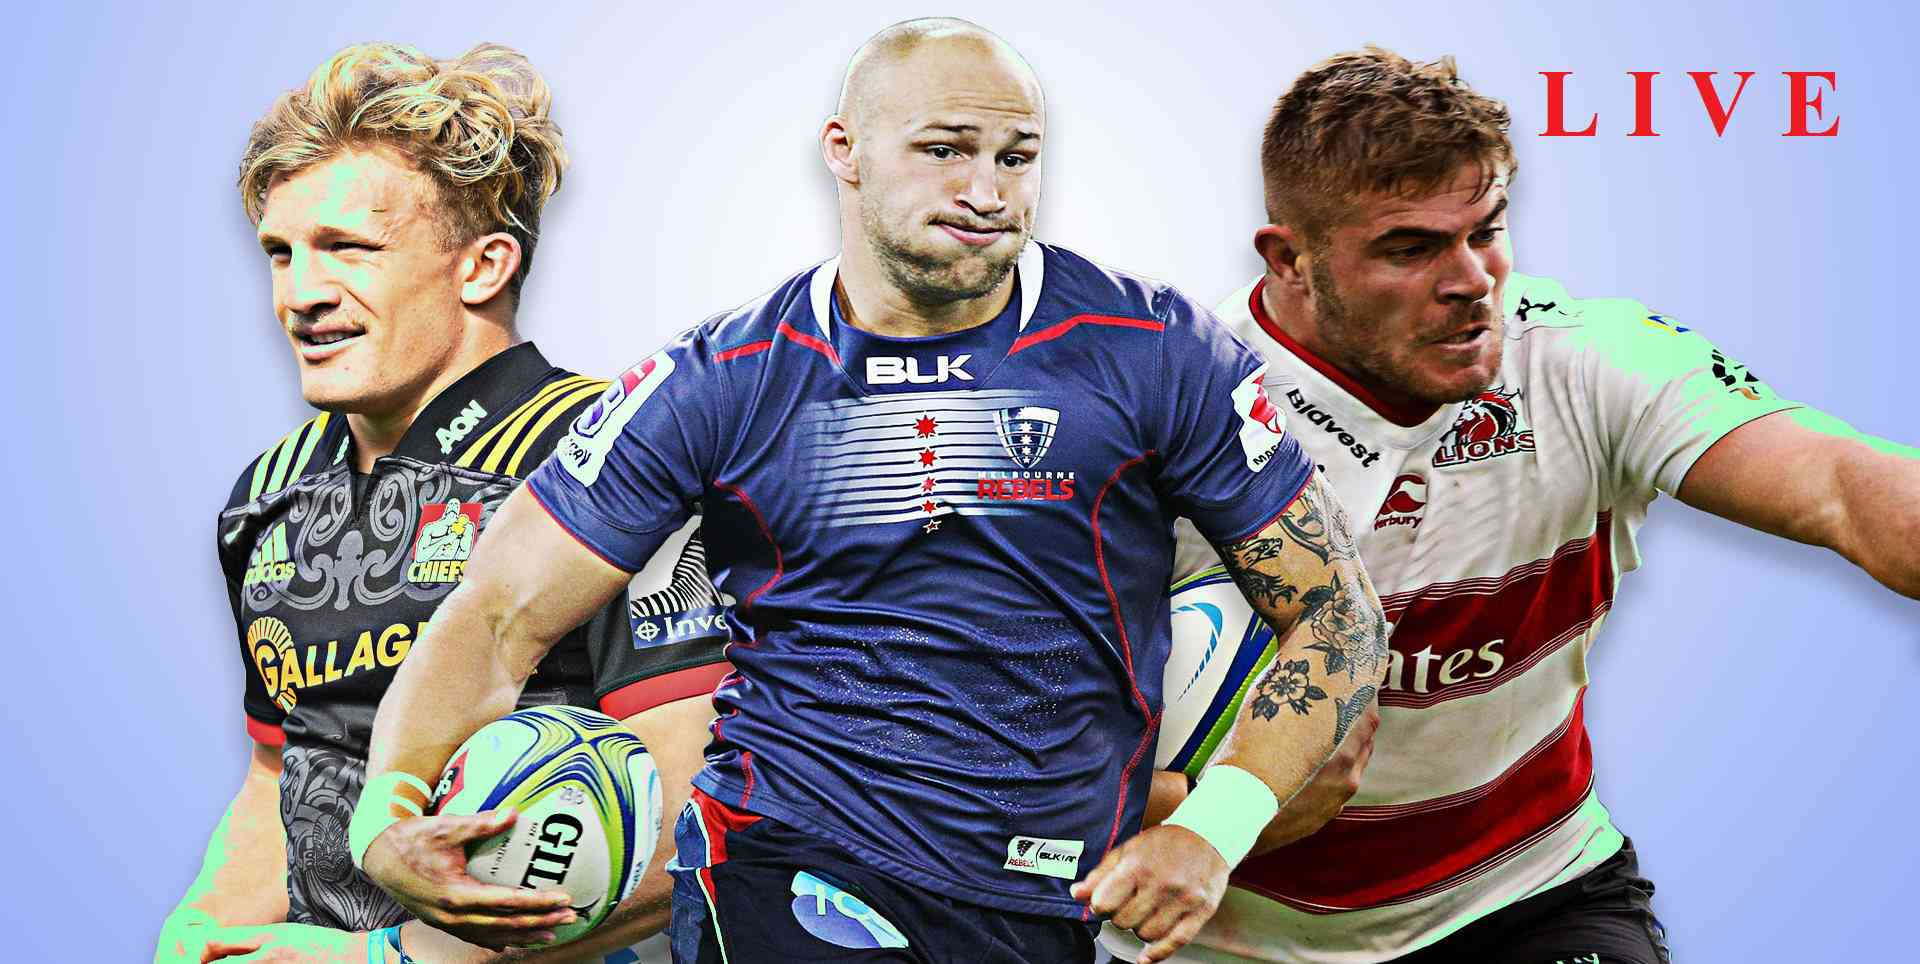 bulls-vs-chiefs-2018-rugby-live